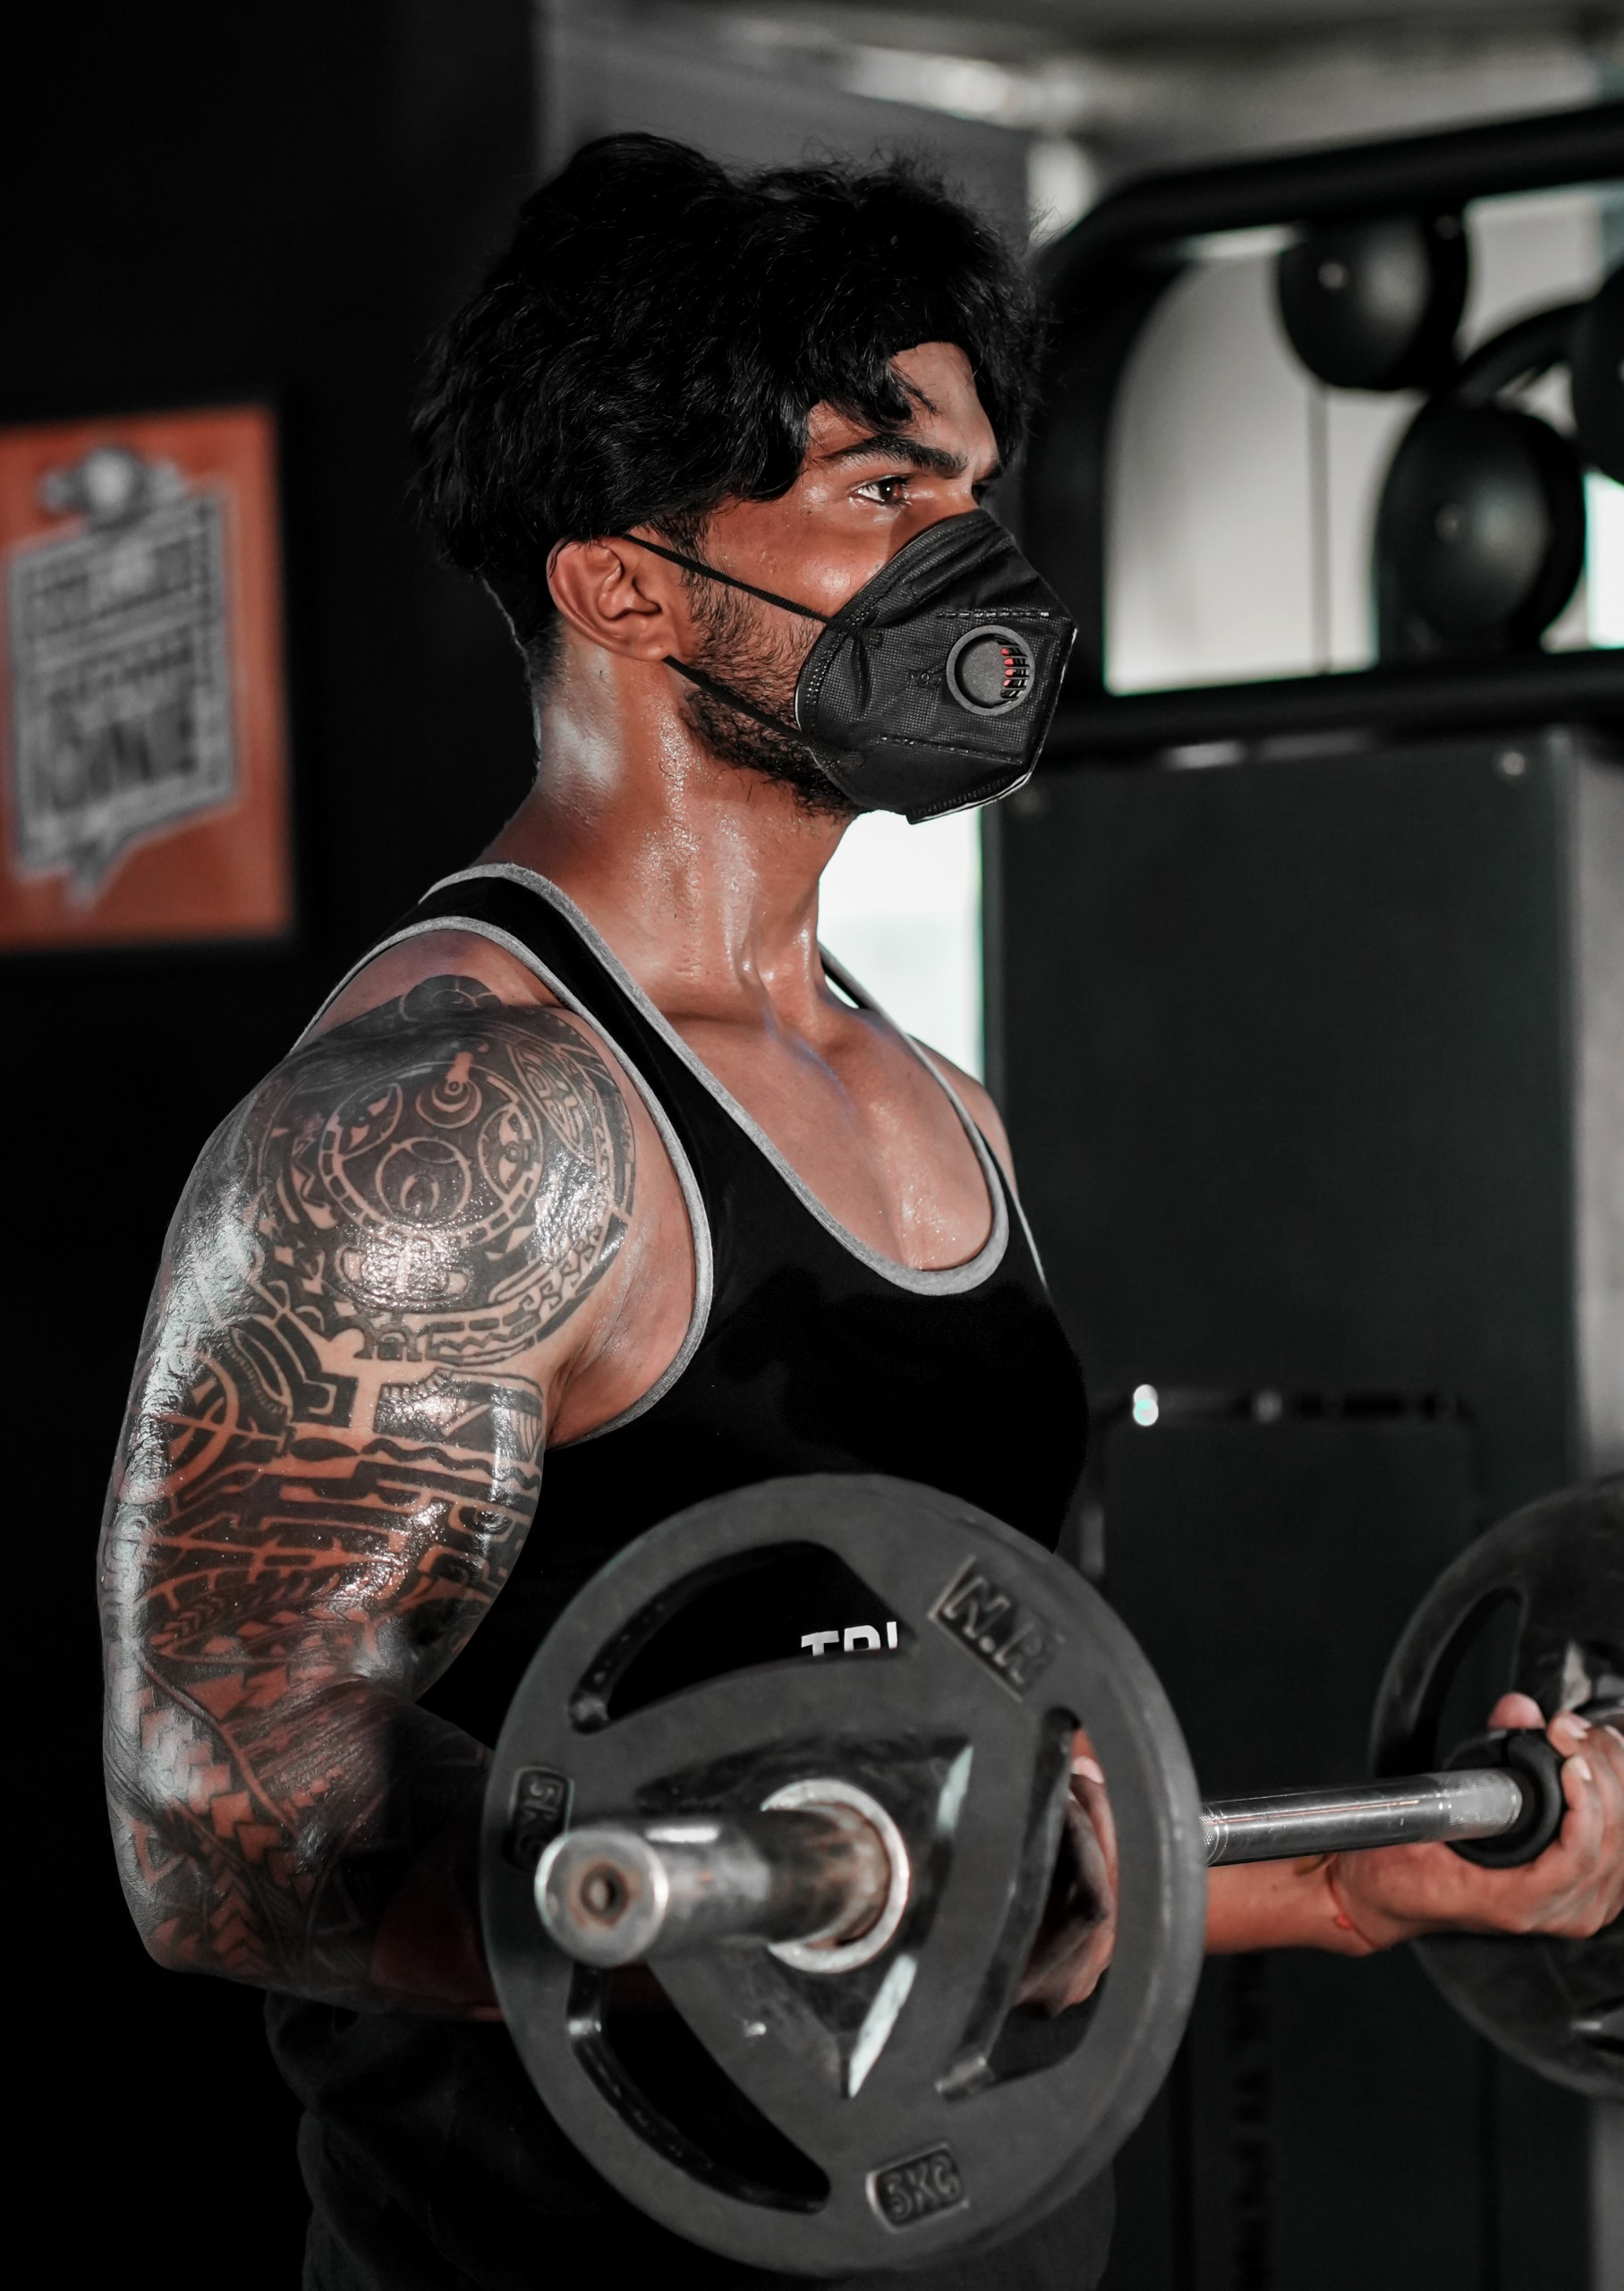 bicep curls with barbell at gym